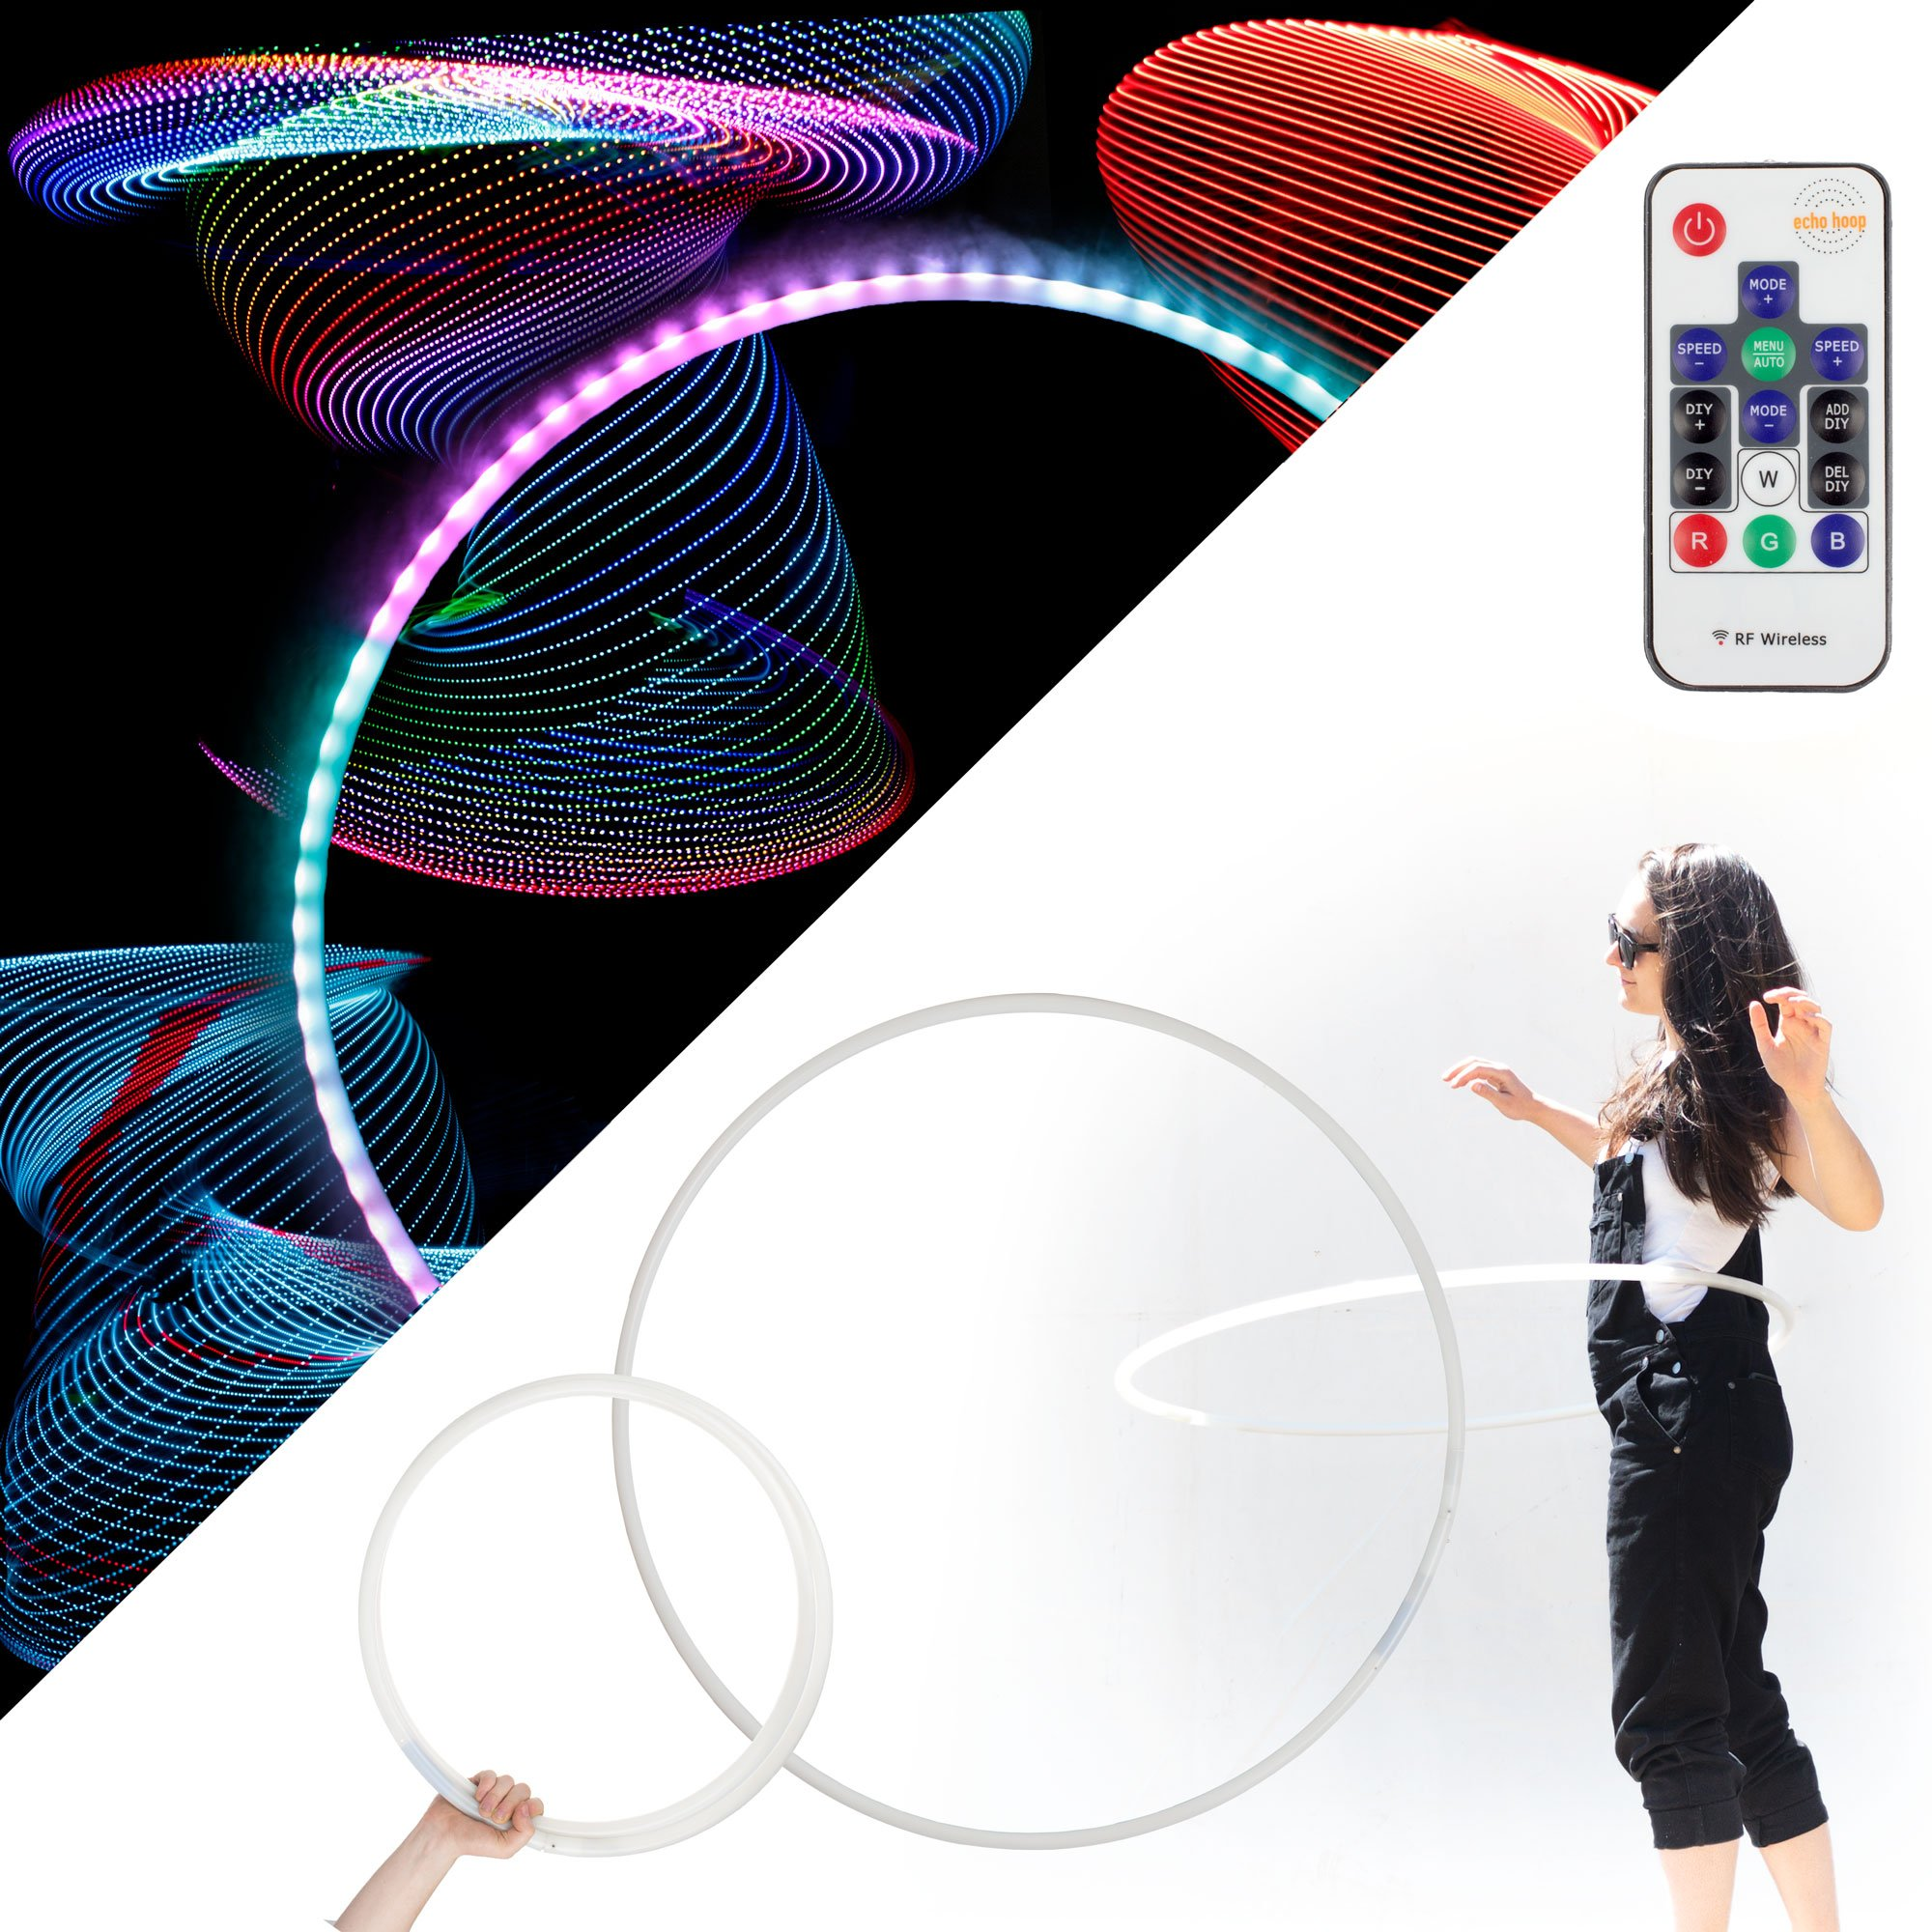 Echo Glow - Light Up Collapsible Professional Hula Hoop with 84 LED's, Fully Rechargeable + Remote Control! 300+ Light Patterns!